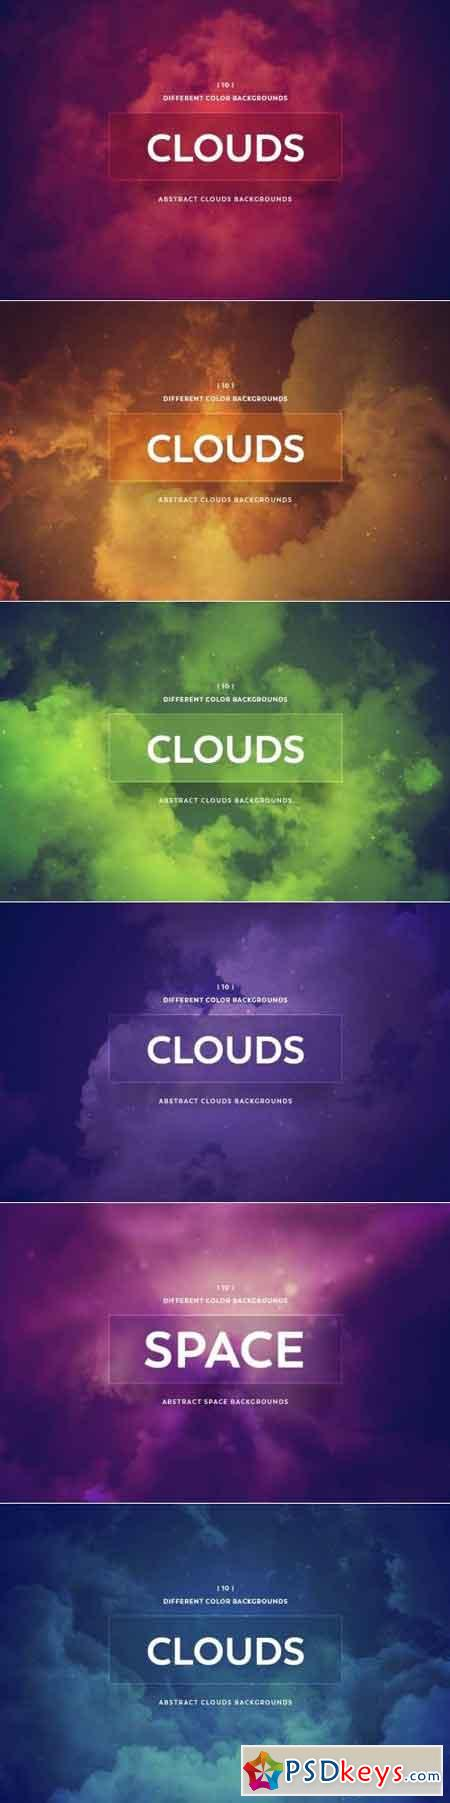 Abstract Clouds Backgrounds Bundle